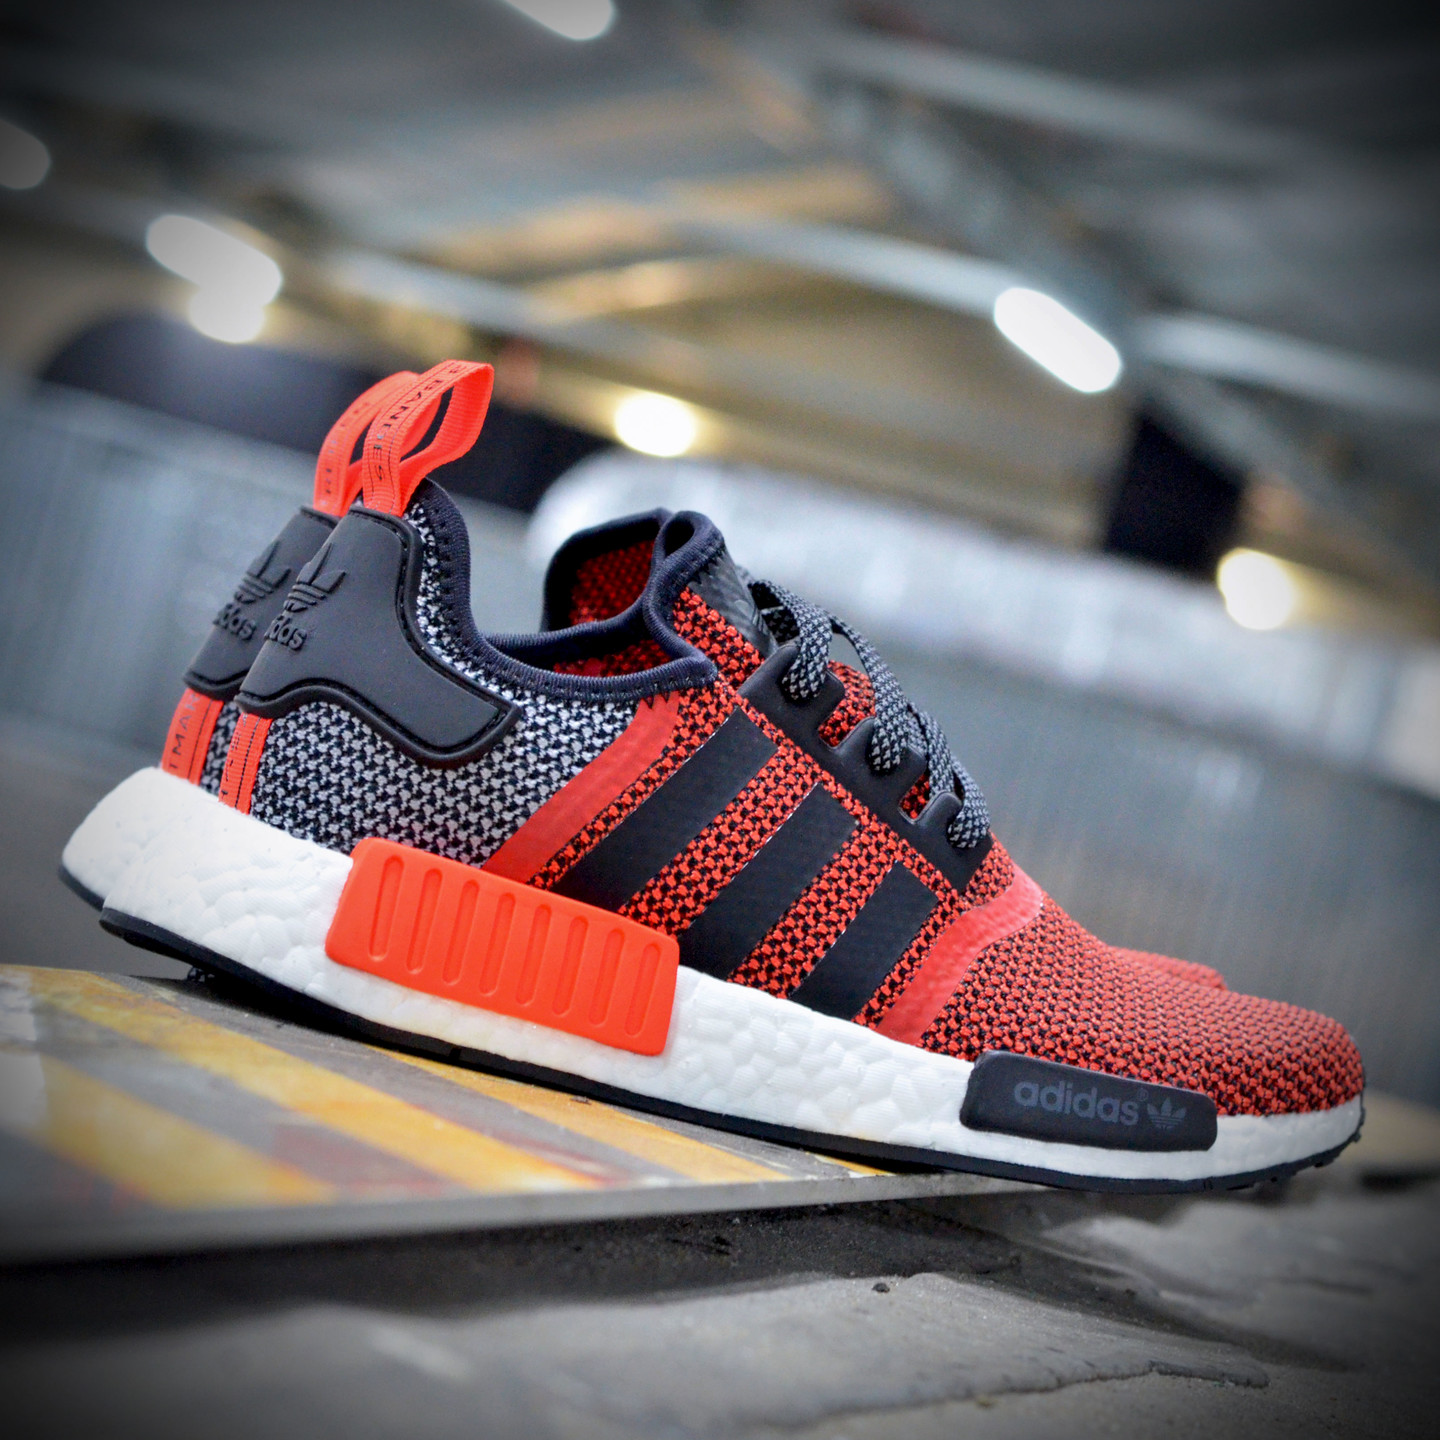 Adidas NMD R1 Runner Lush Red / Core Black S79158-46